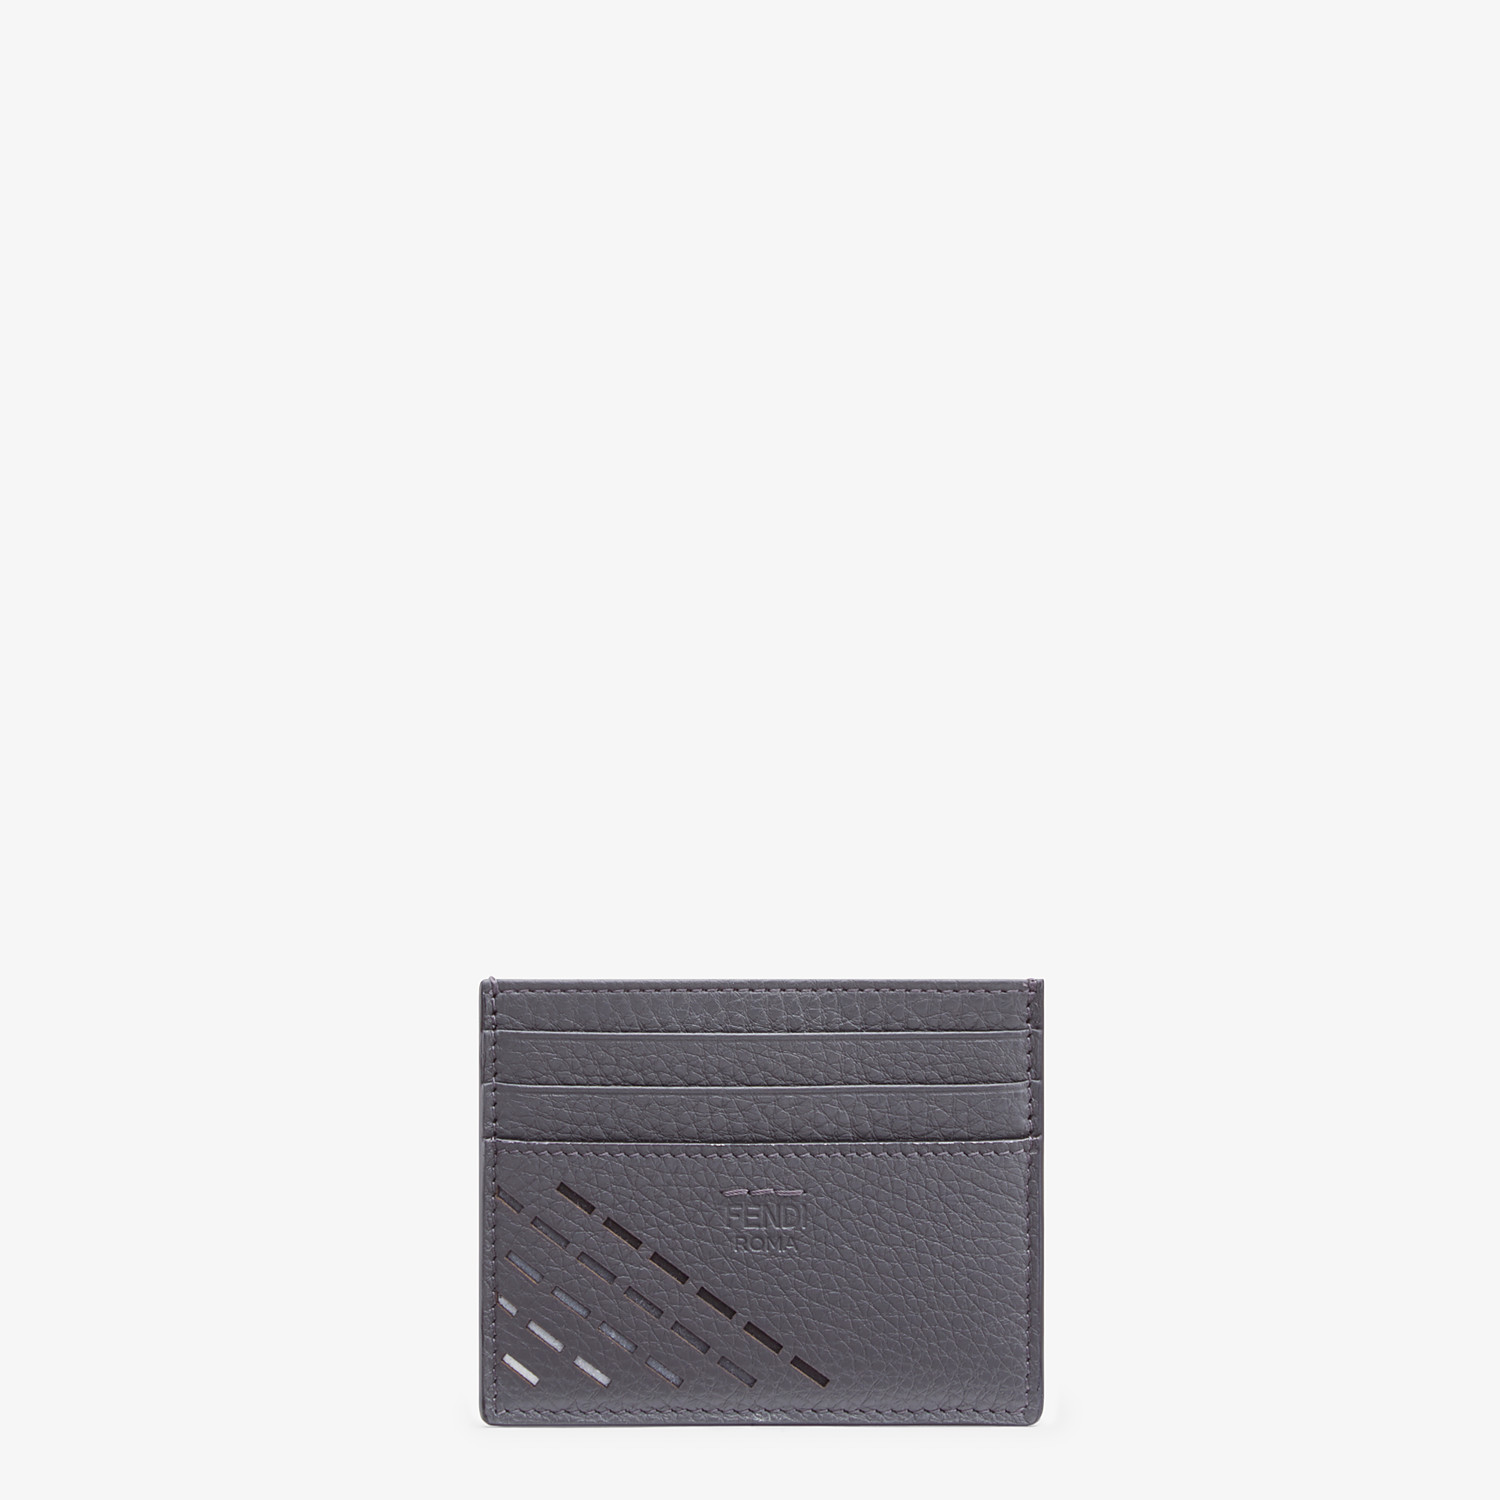 FENDI CARD HOLDER - Gray leather card holder - view 1 detail